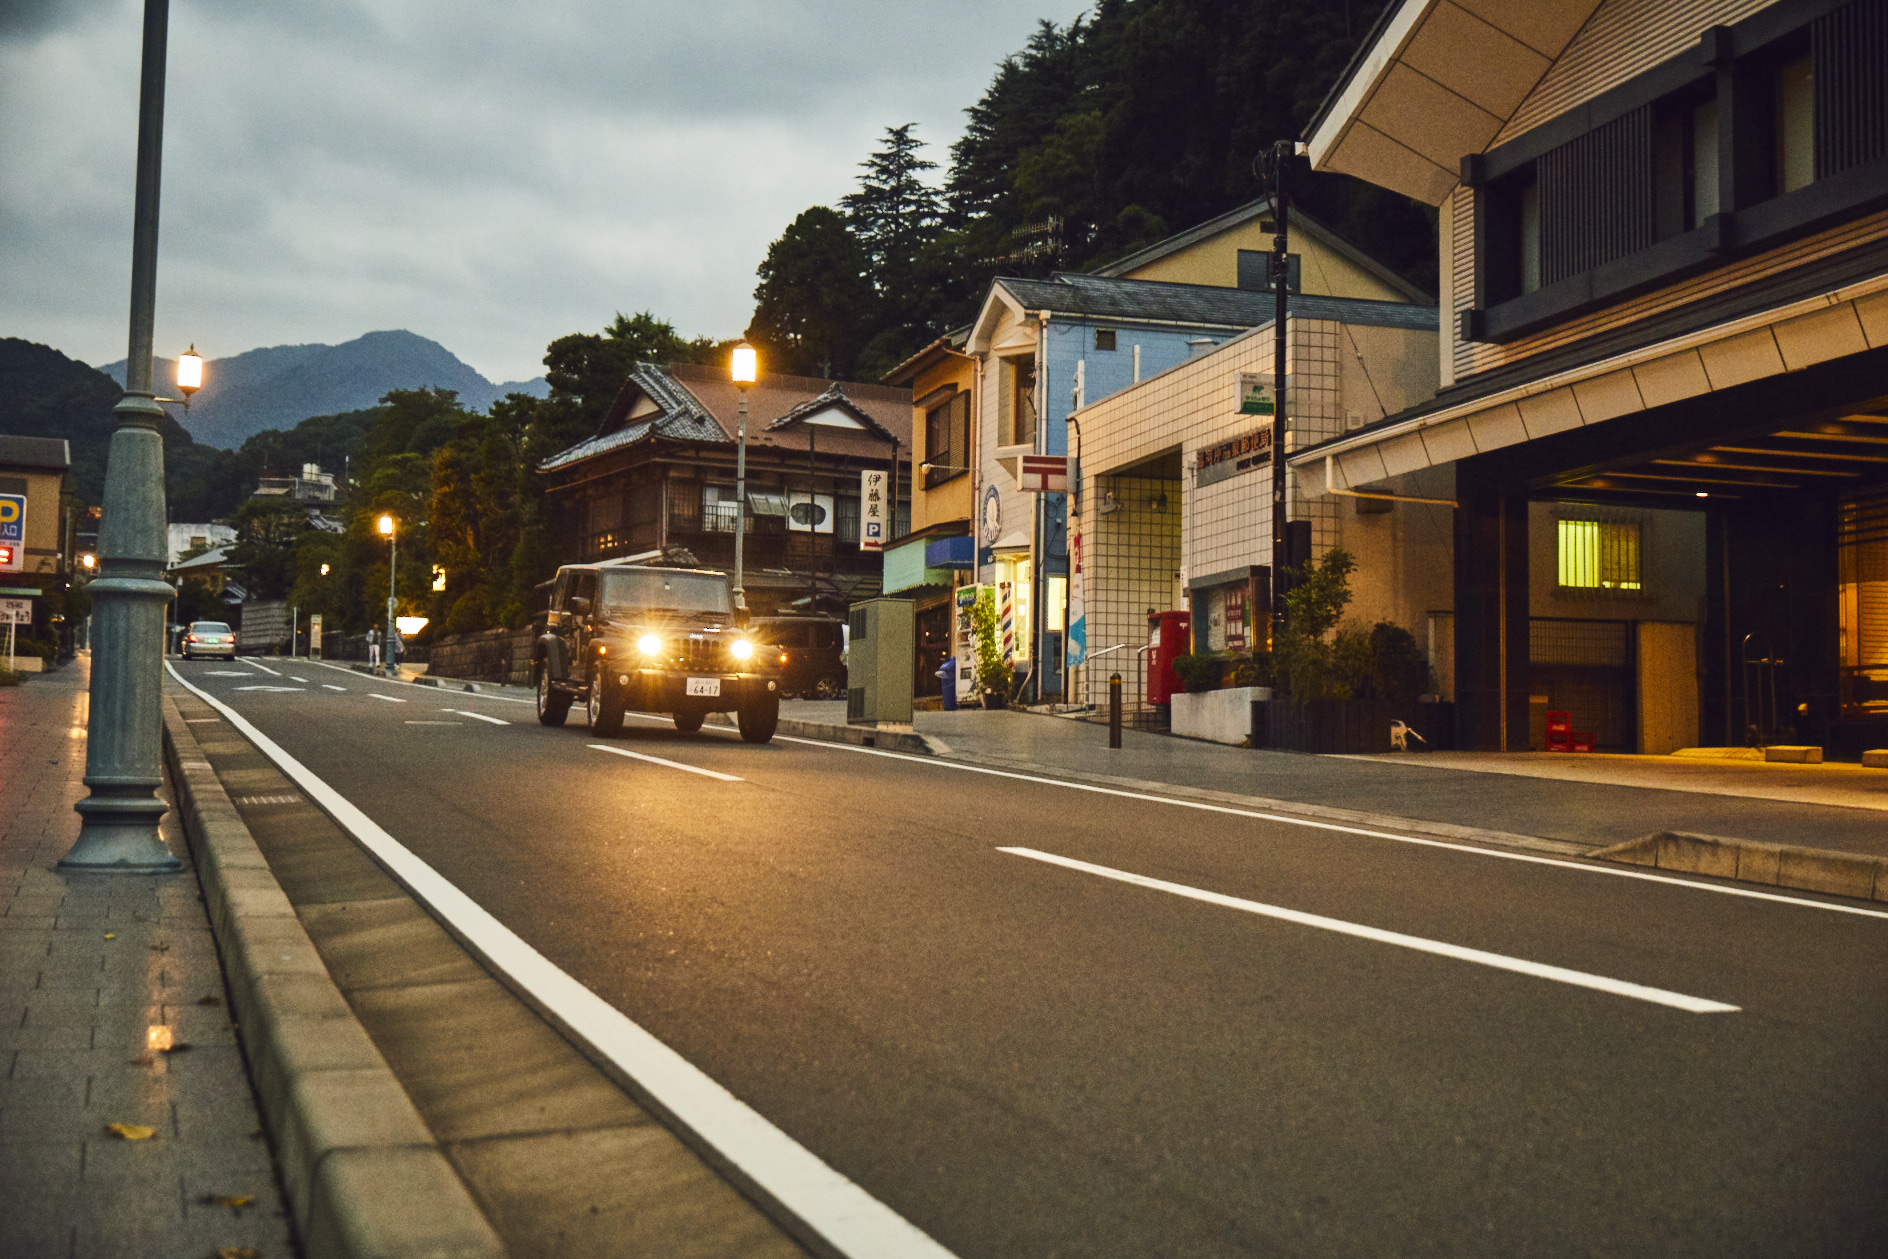 ho_104972 My Jeep®,My Life. ボクとJeep®の暮らしかた。女優・太田莉菜